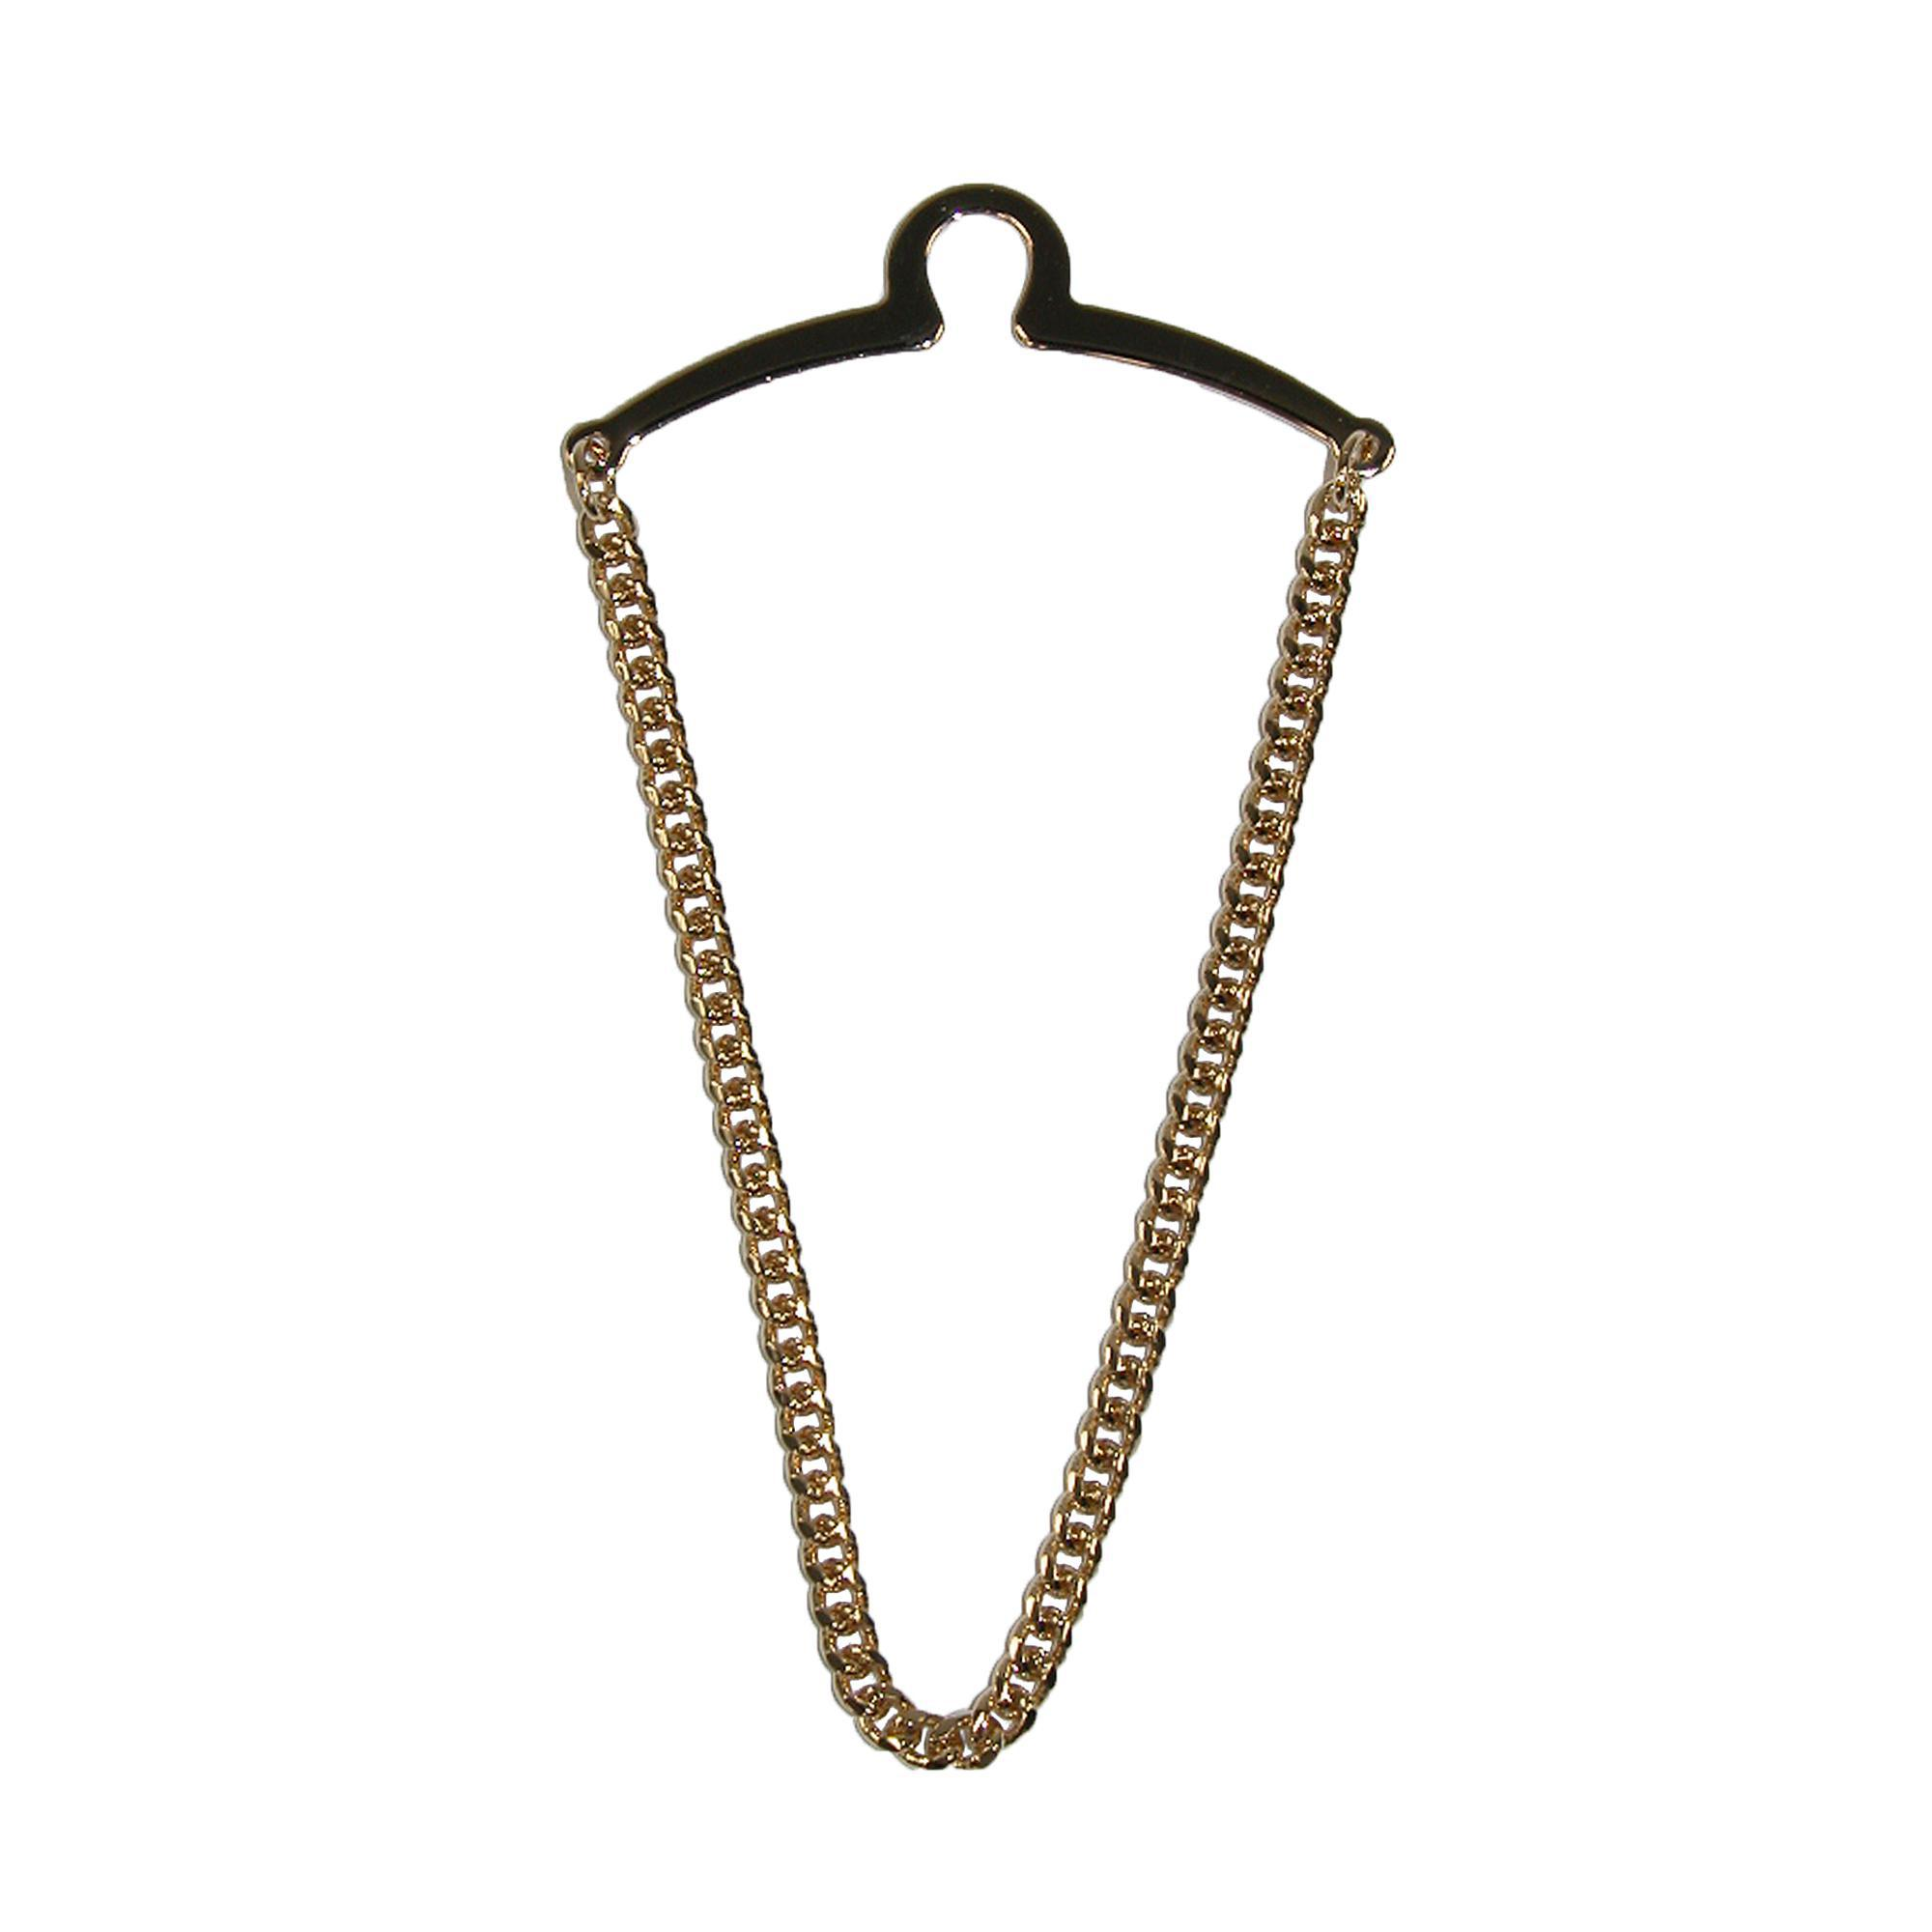 Competition_Inc._Men's_Single_Loop_Tie_Chain_-